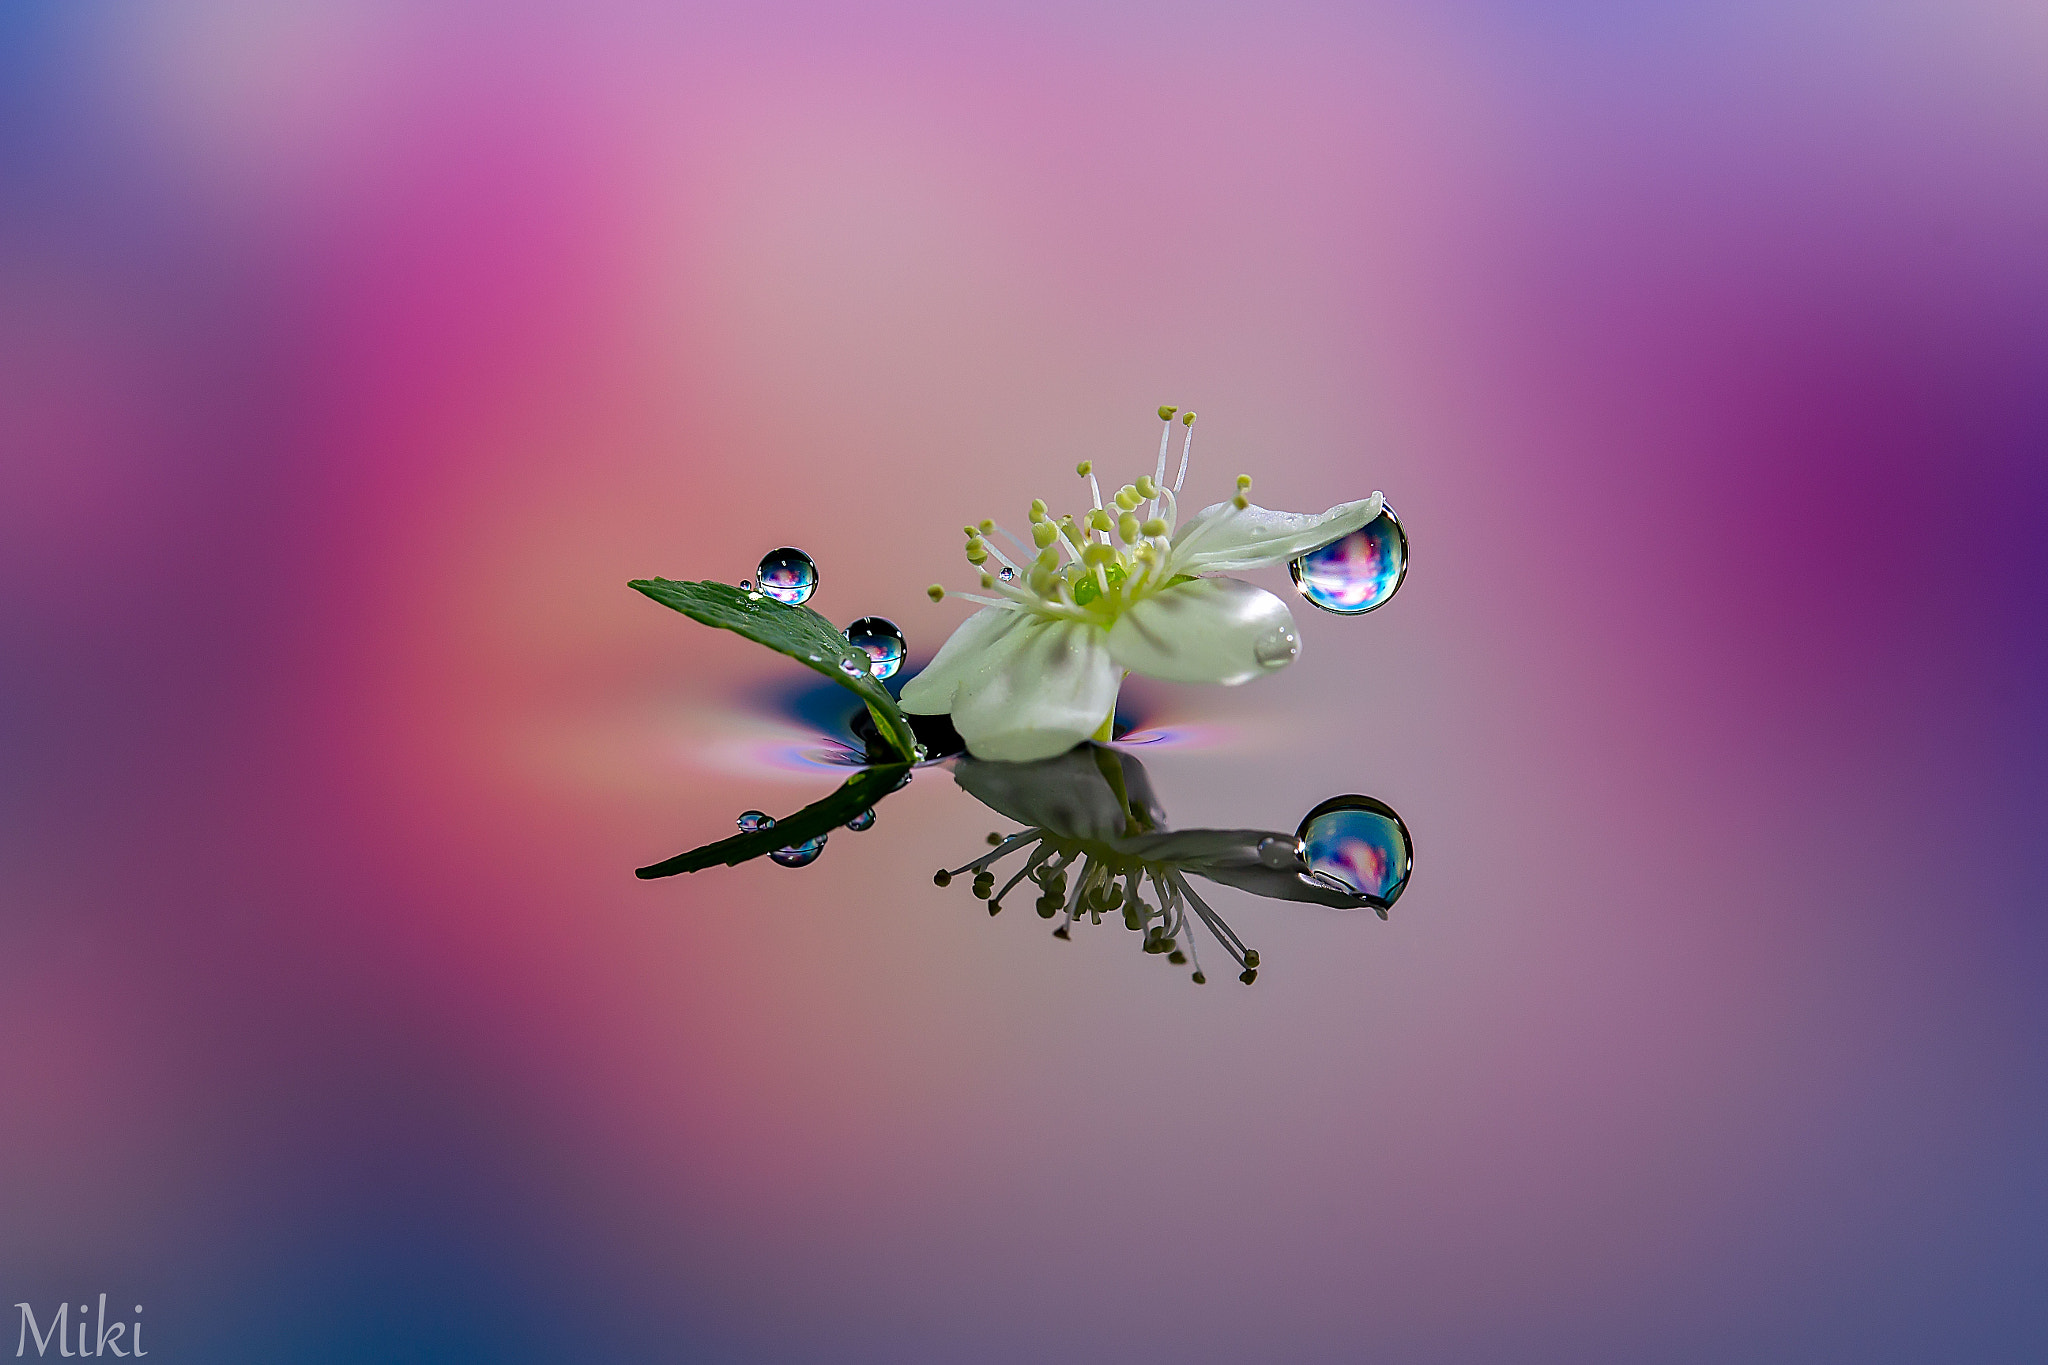 Photograph Dress up flower by Miki Asai on 500px